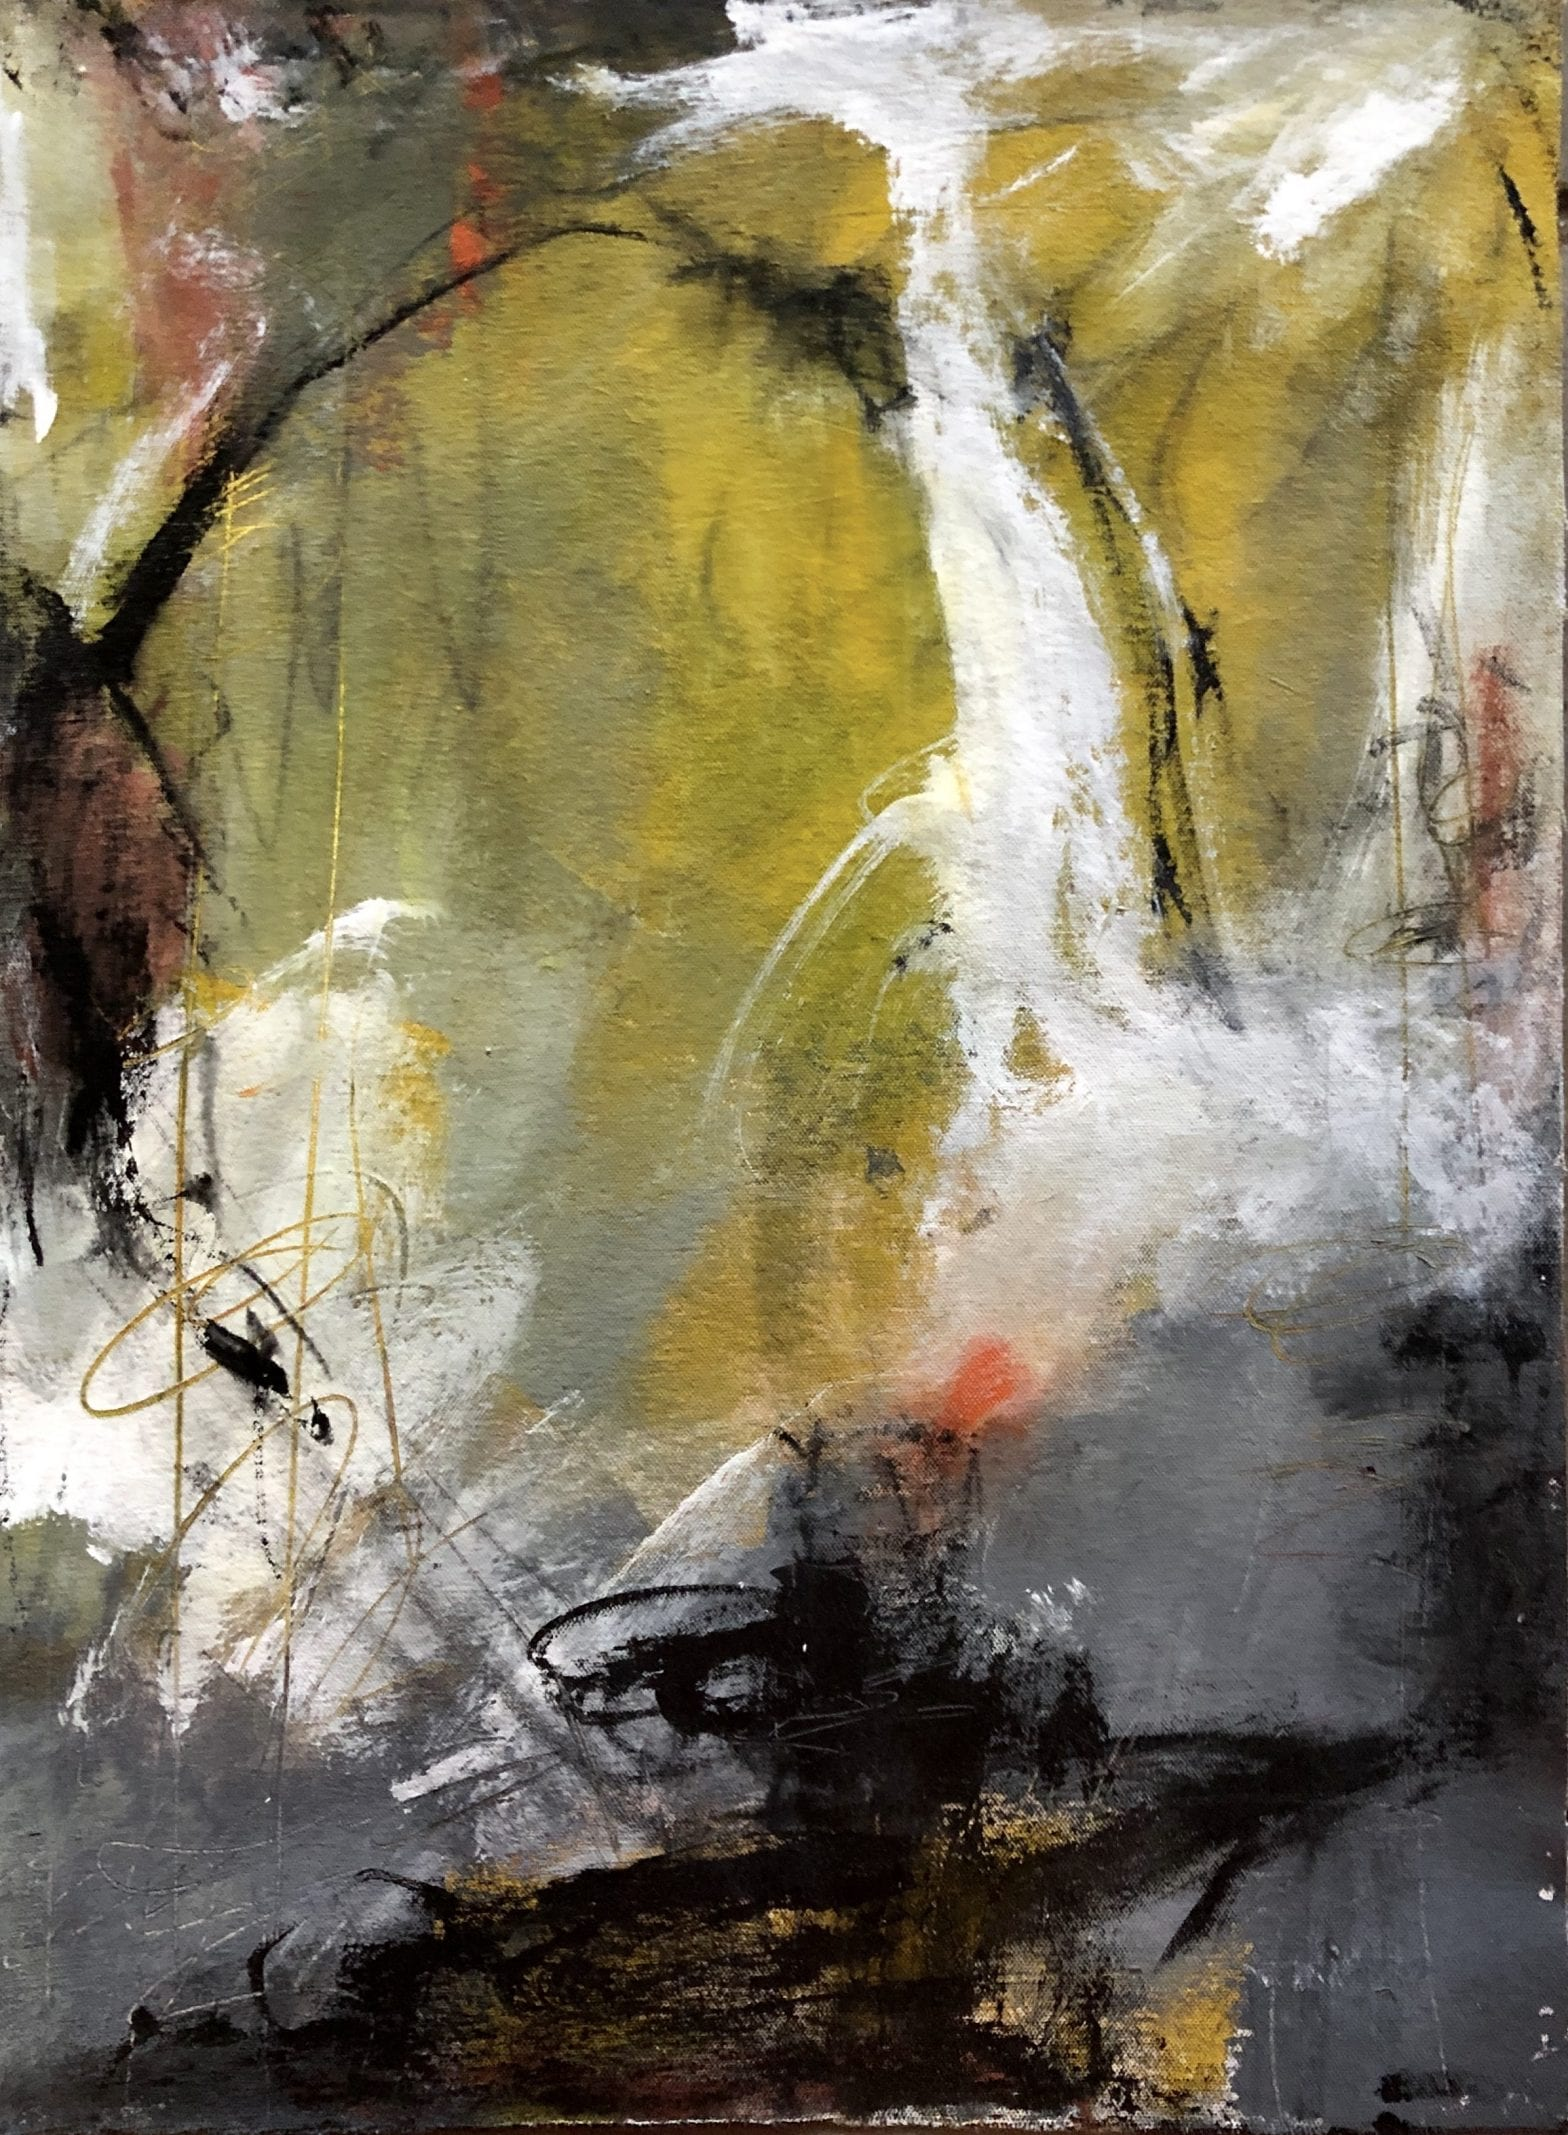 Entranced By The Rain, a painting in the Dangerously Abstract Collection